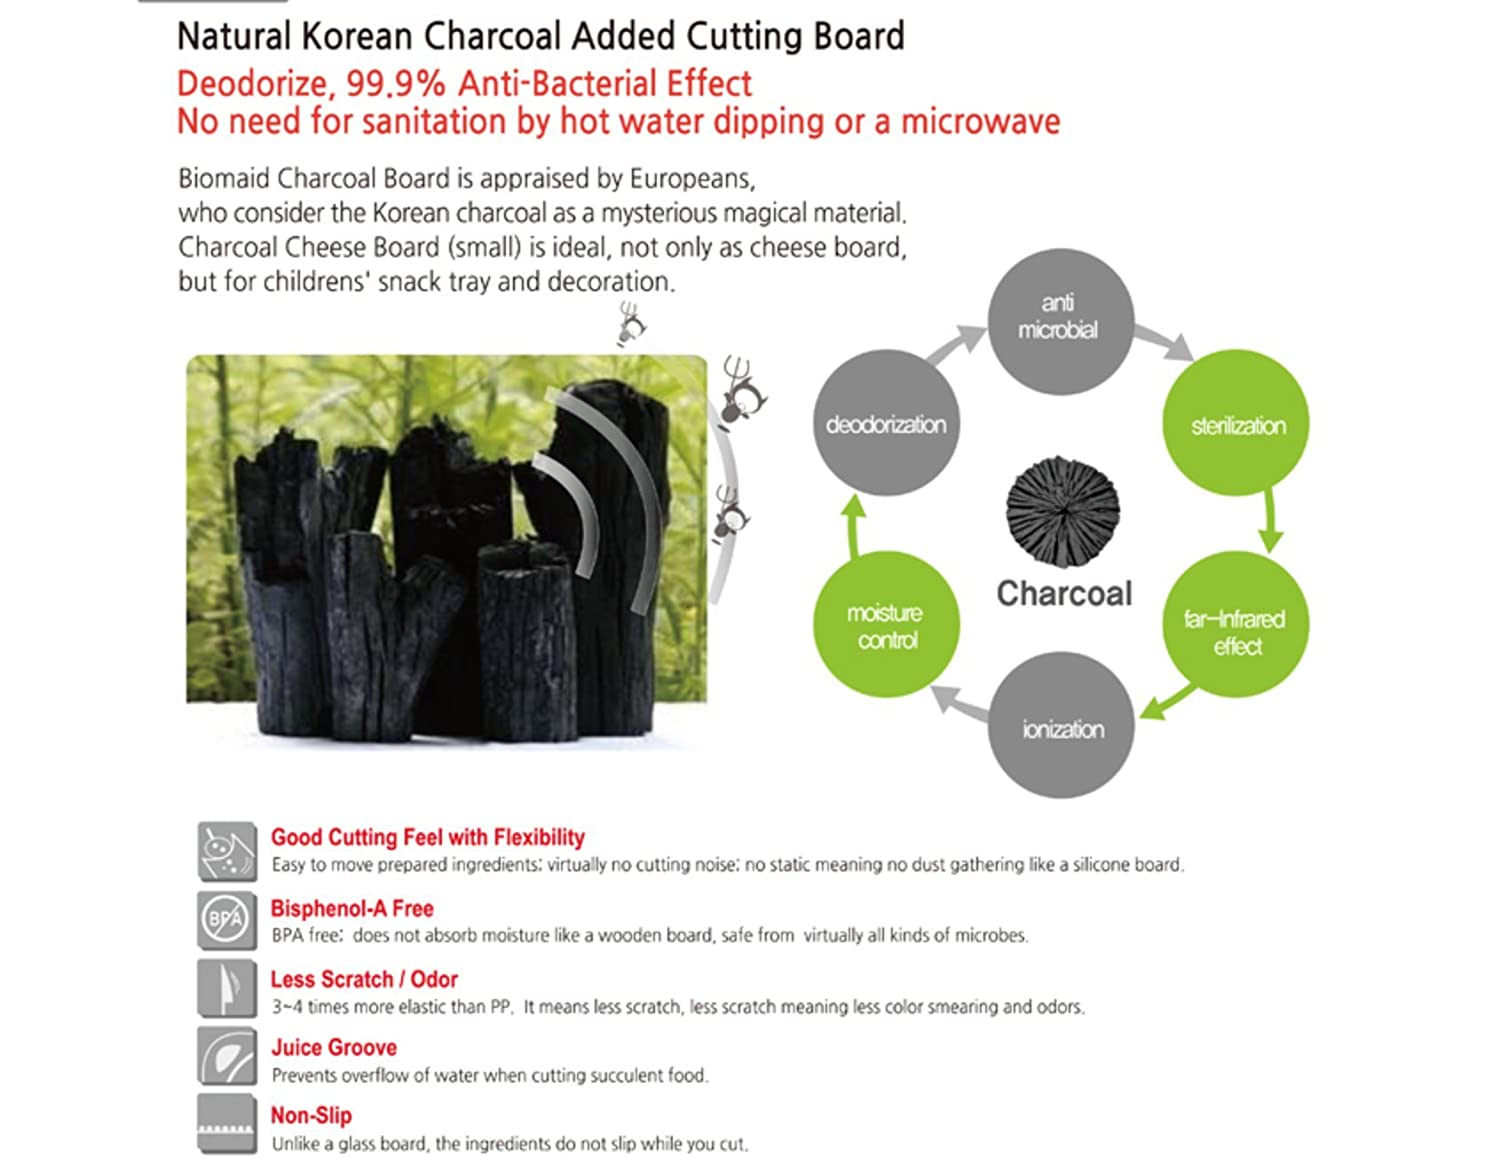 Plastic Cutting Board Antibacterial Charcoal Circuit Boardflexible Boardlow Cost Flexible Product Mat Chopping Nonslip Size 15 X 10 Kitchen Dining